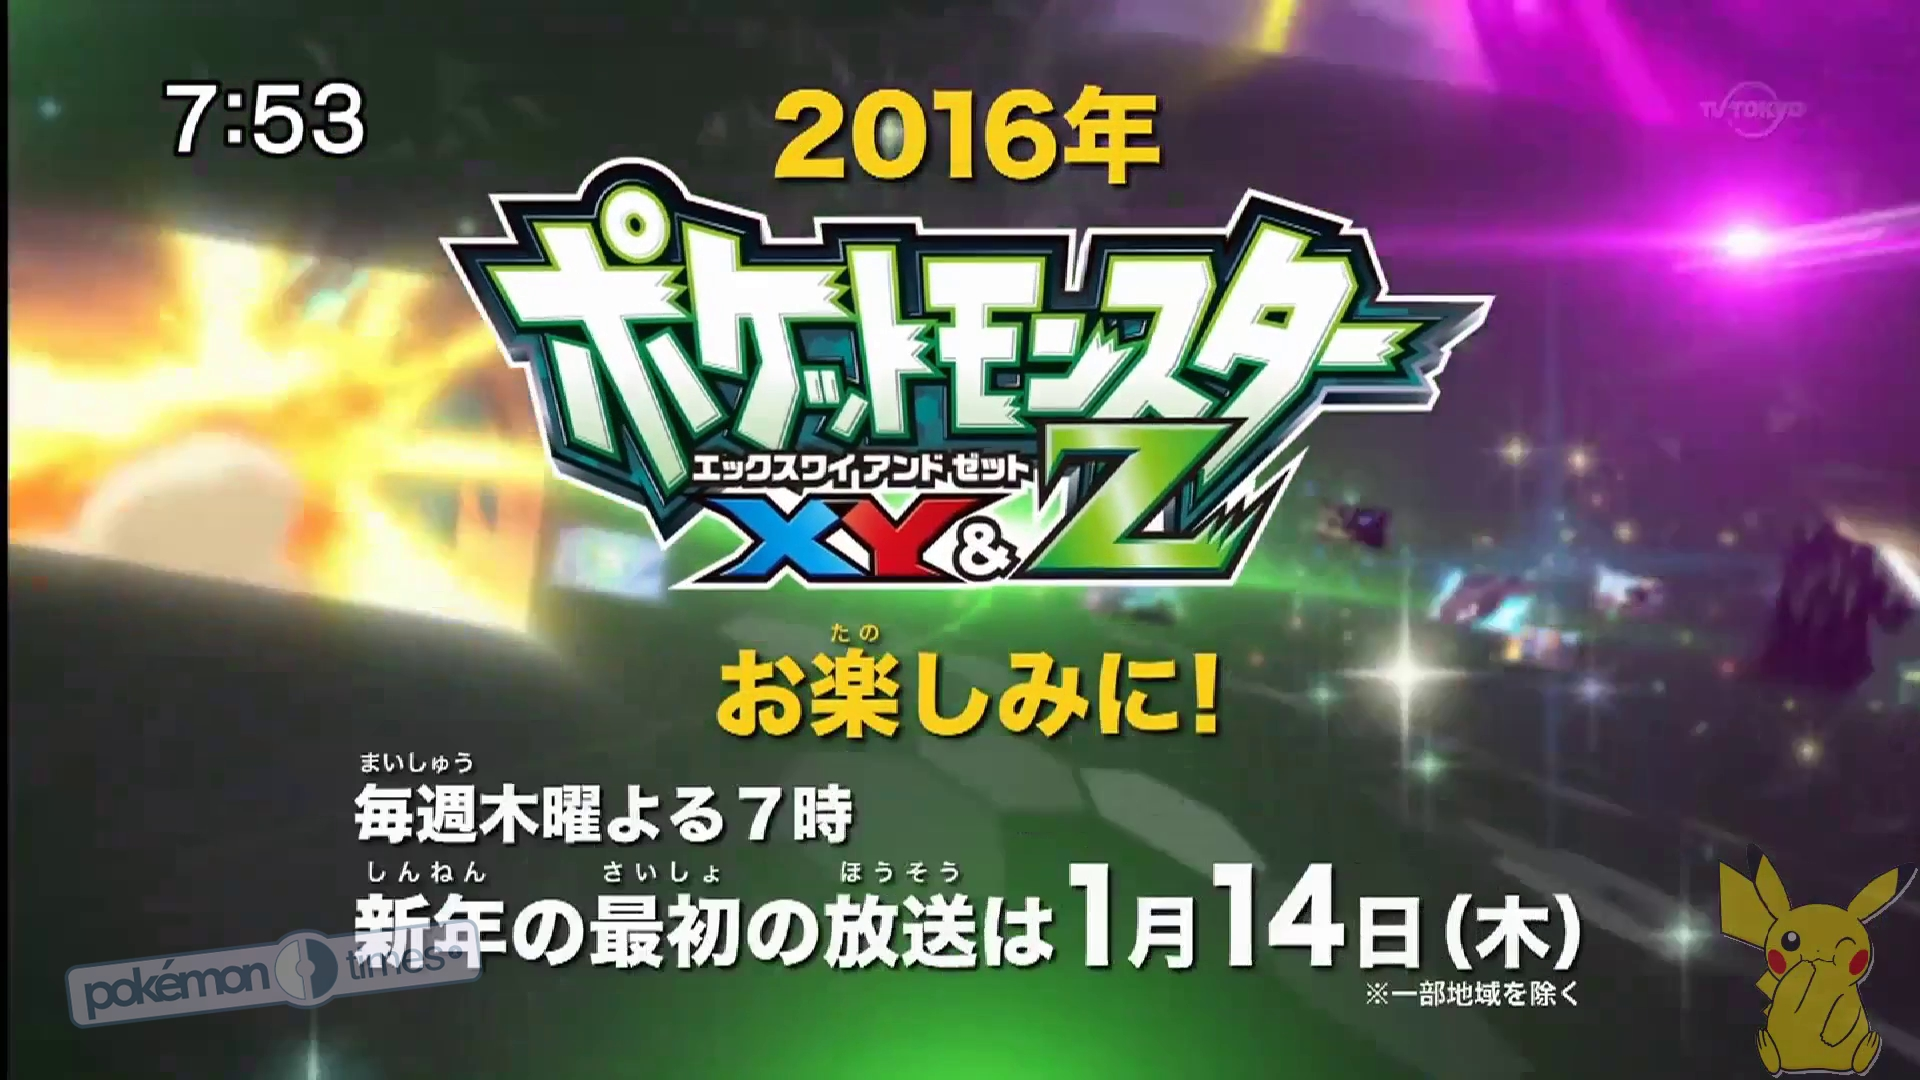 anteprime_trailer_2016_anime_xy&z_img16_pokemontimes-it